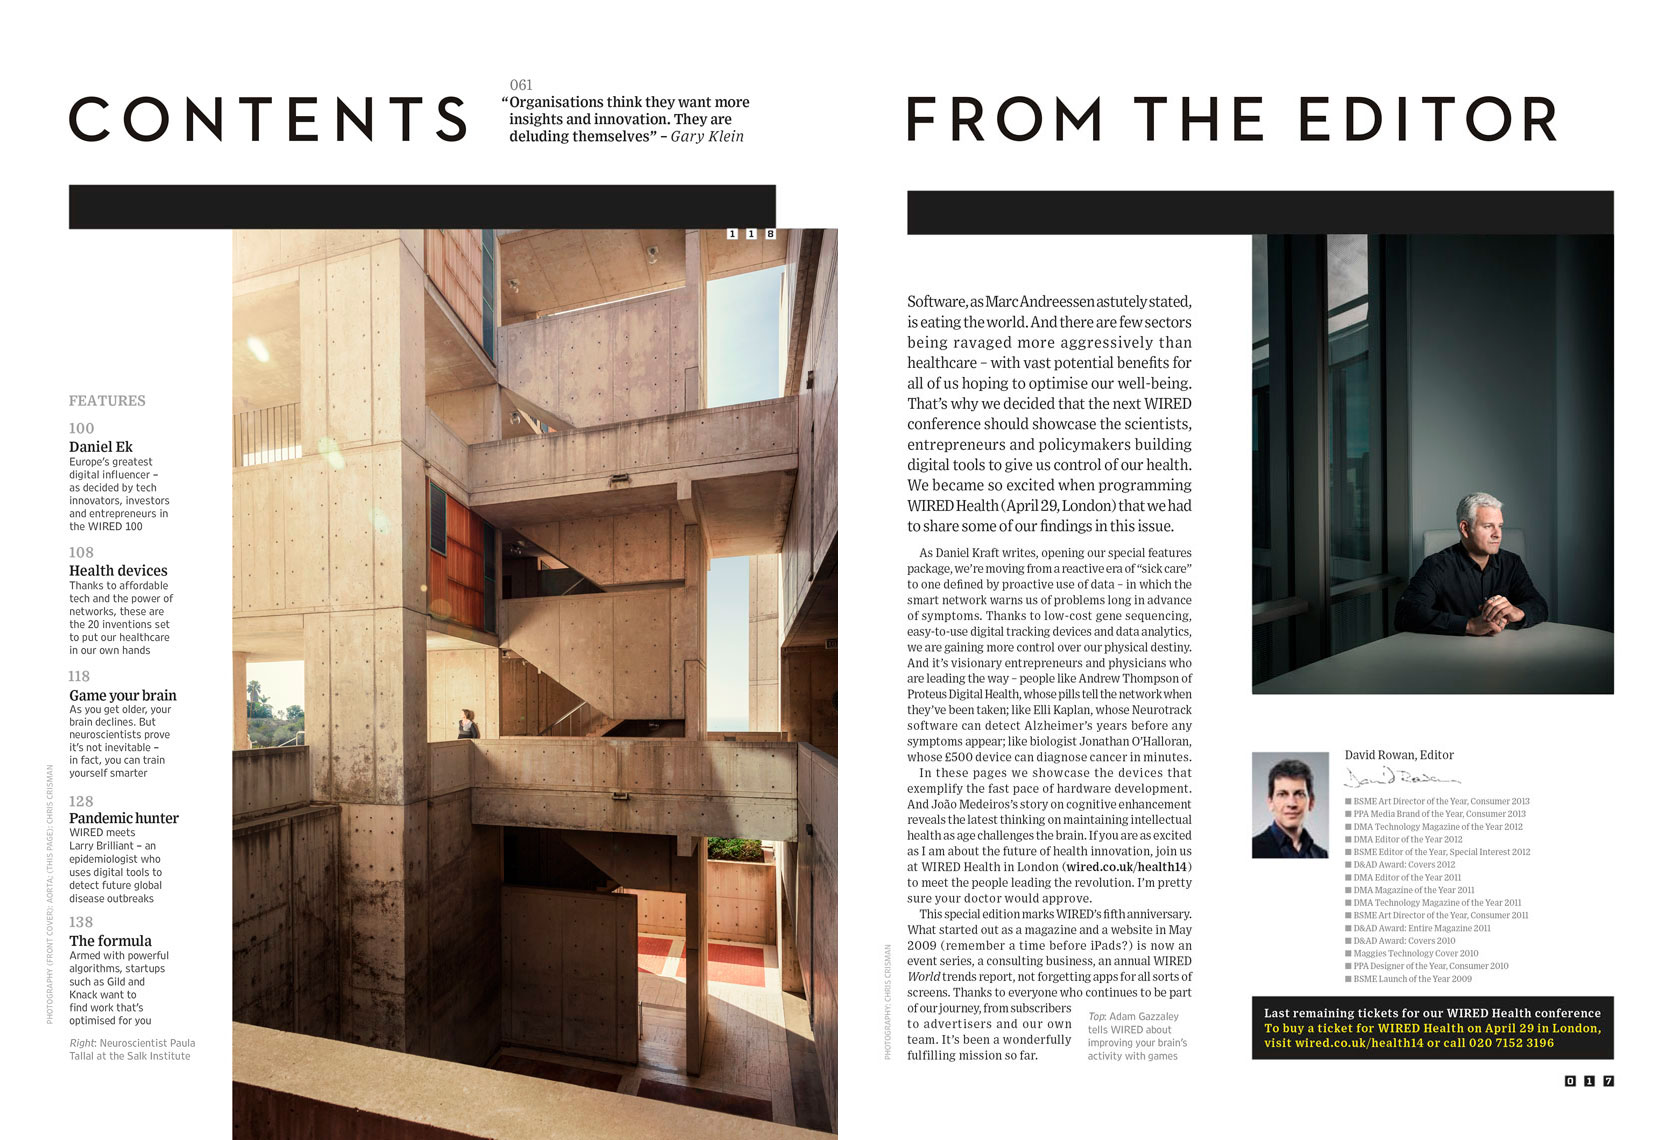 Paula Tallal at the Salk Institute(left) and Adam Gazzaley(right) for Wired UK May 2014 issue